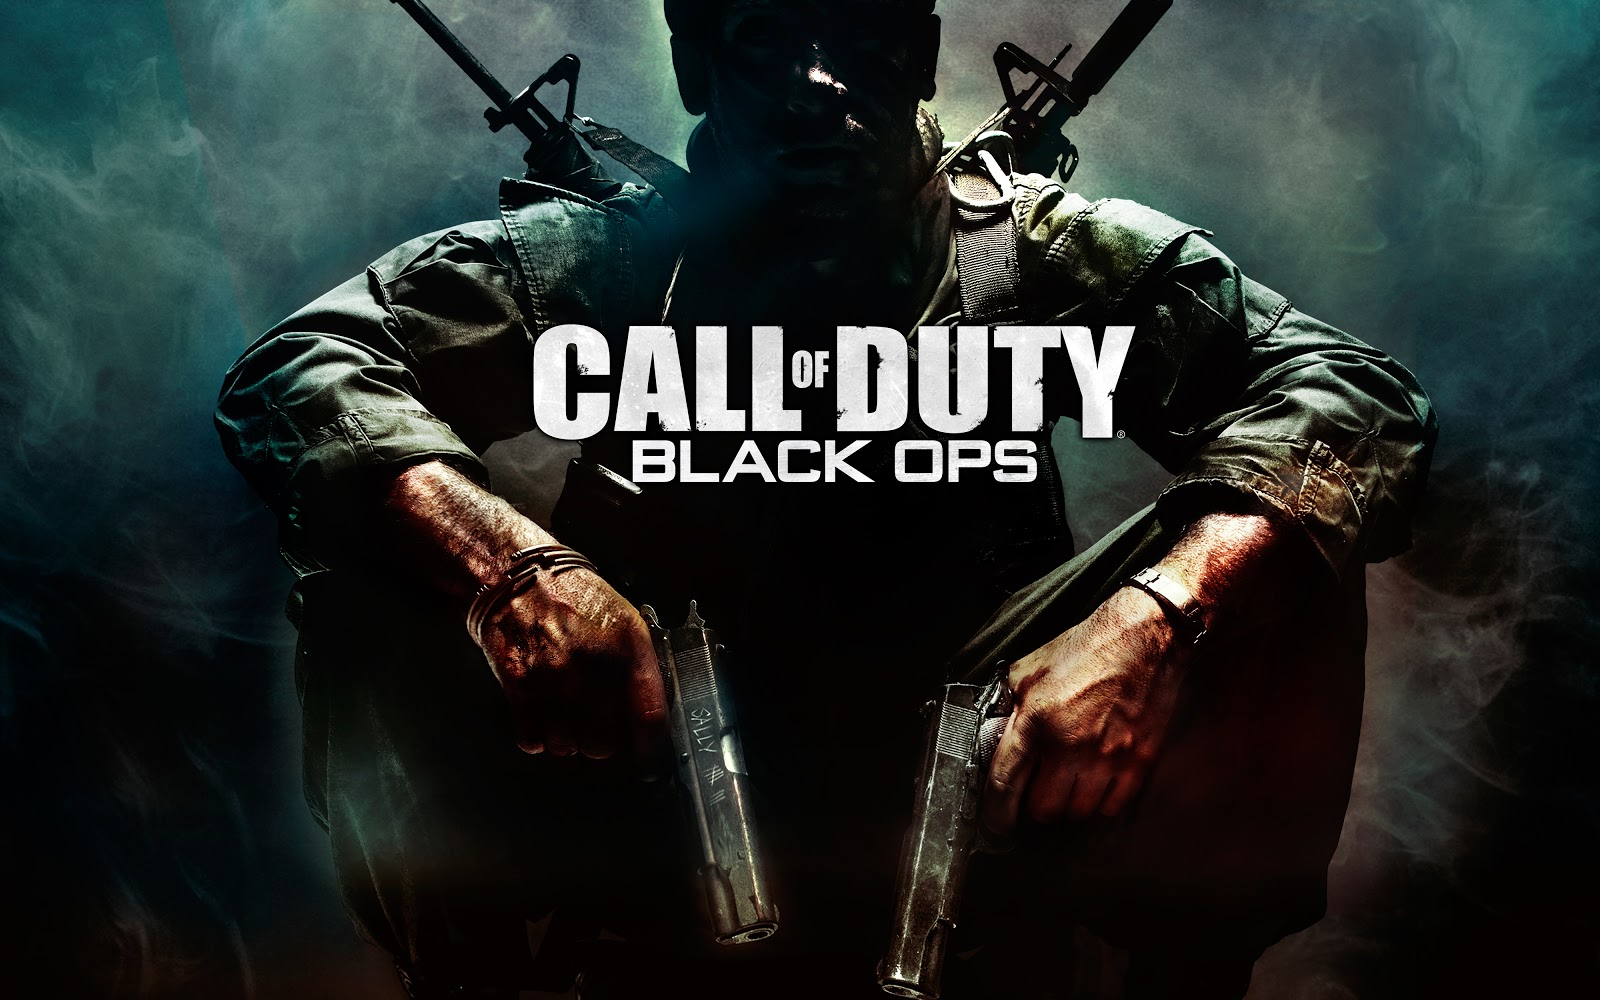 Call Of Duty Black Ops Game Wallpaper